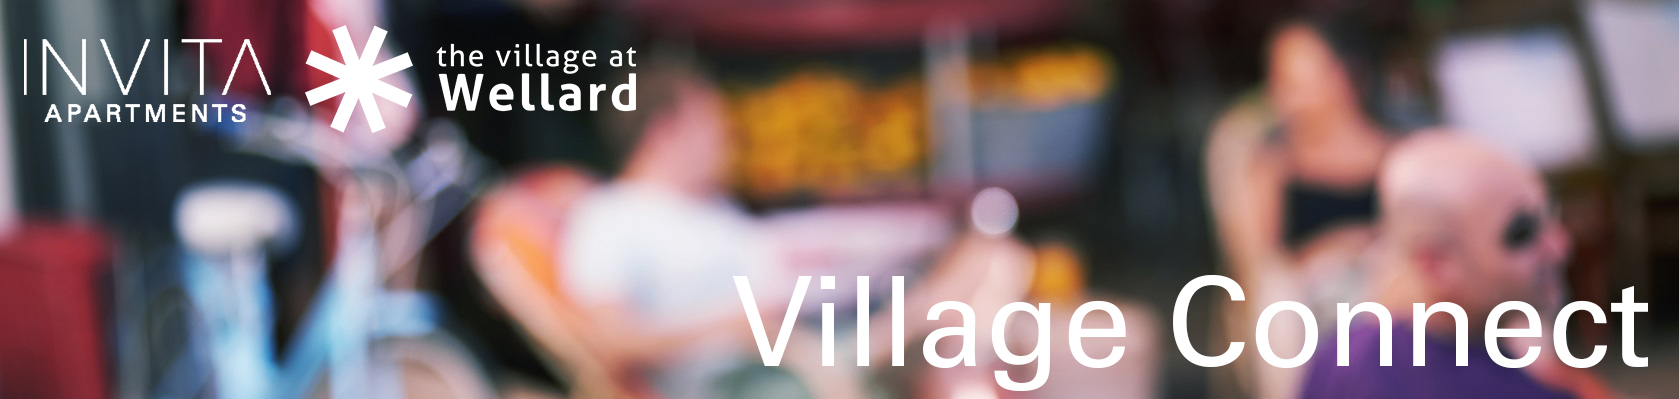 village connect header invita